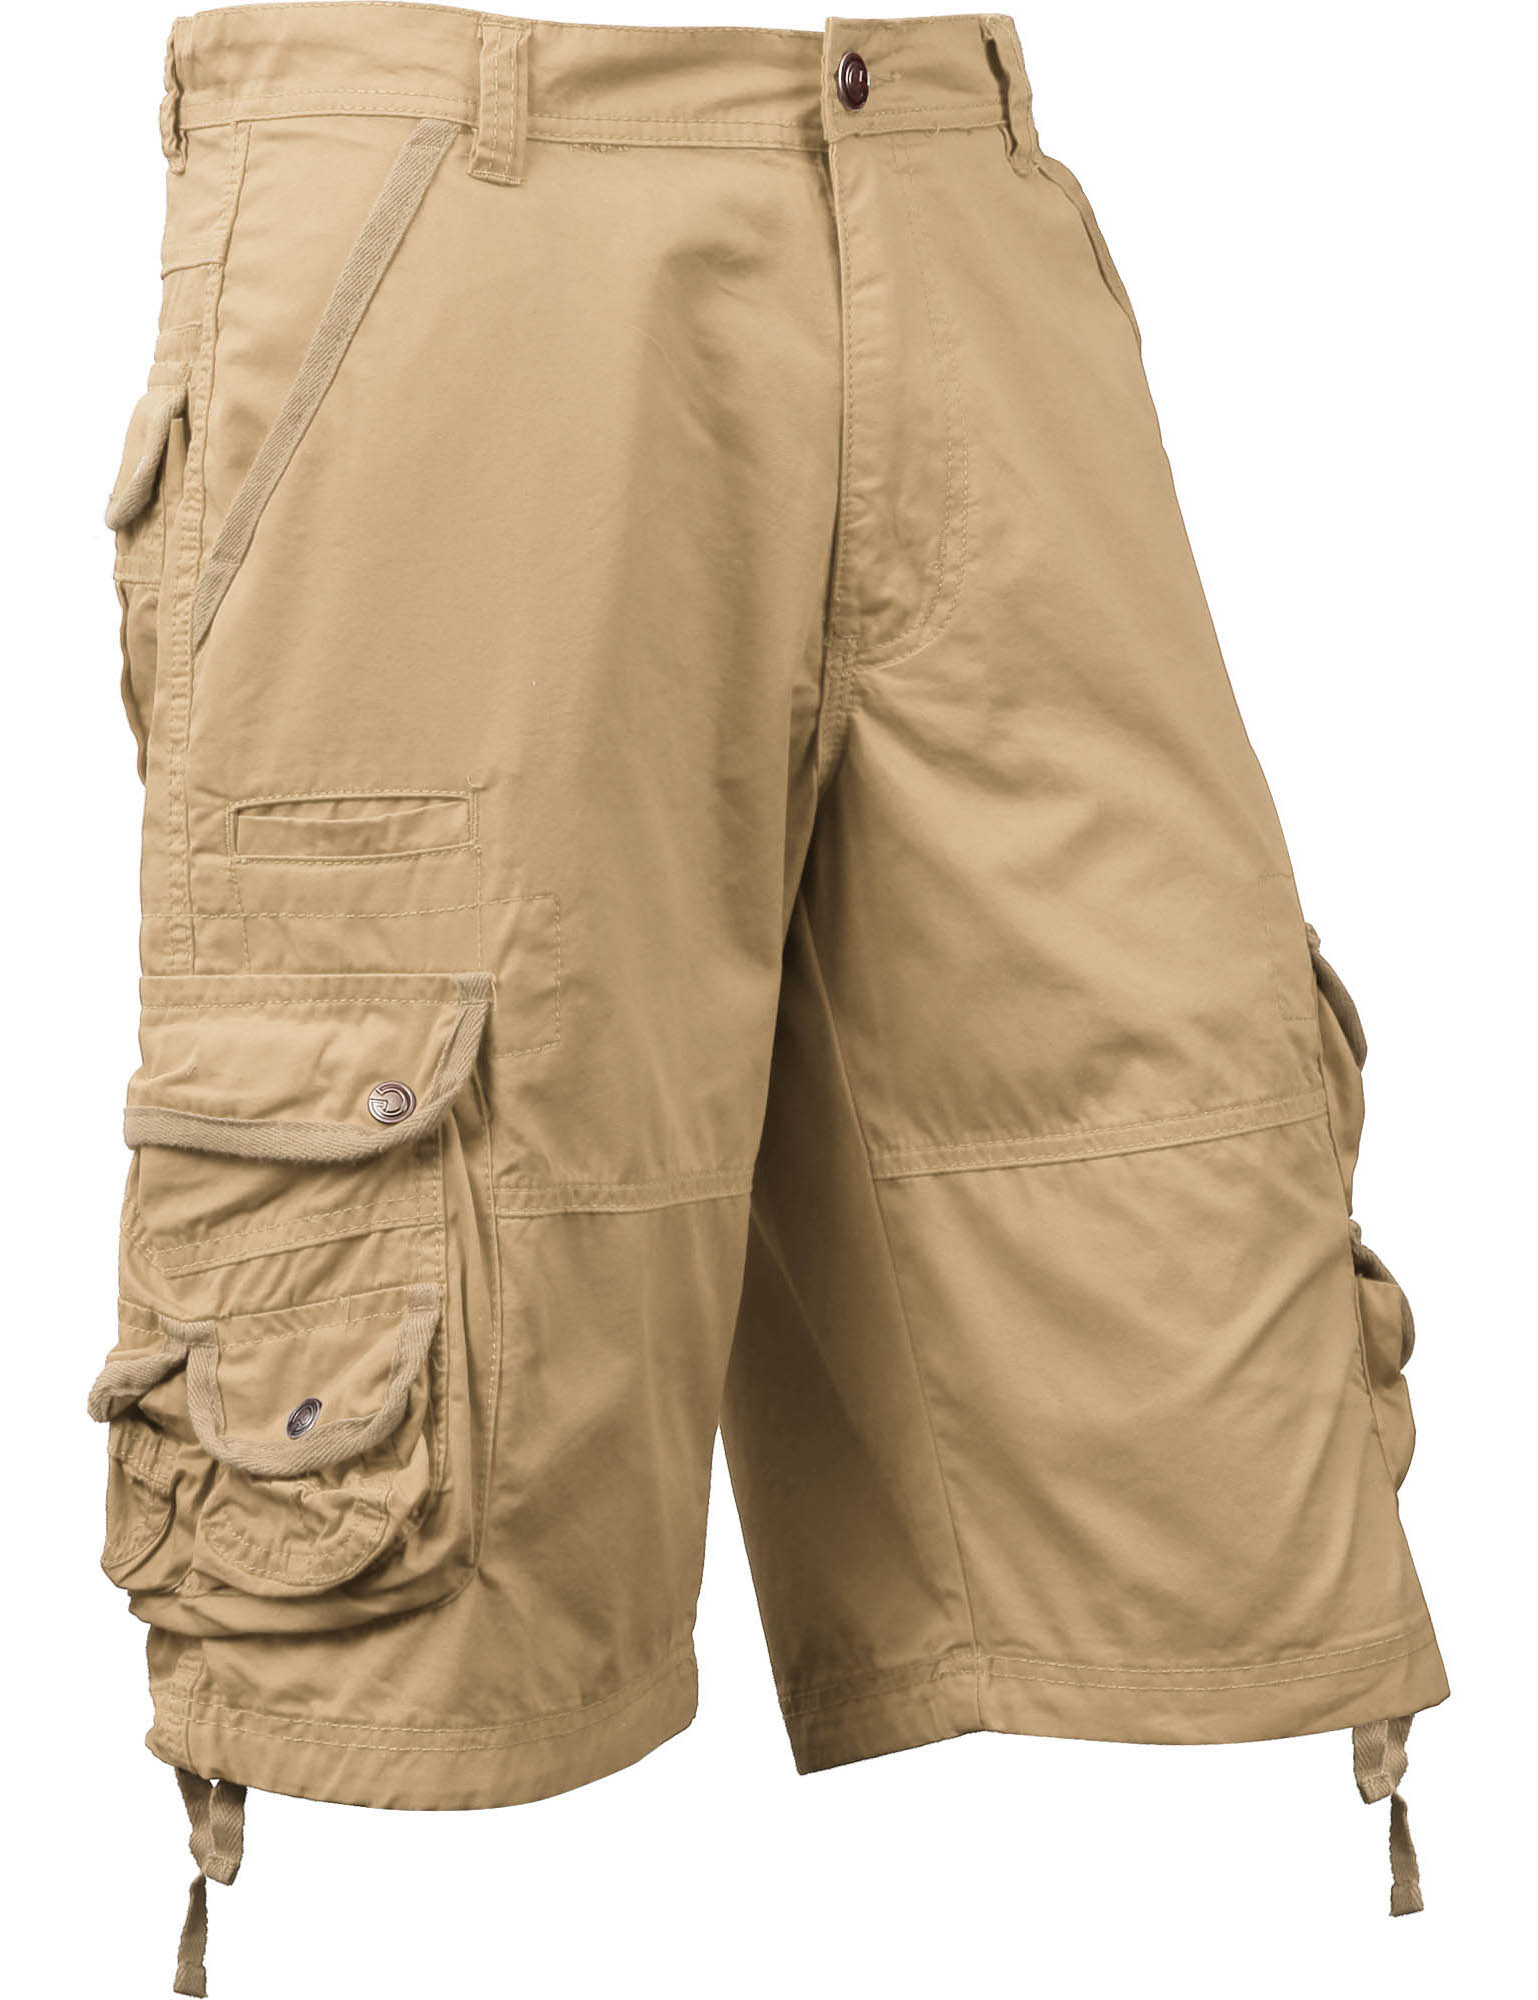 Mens Premium Cargo Shorts Loose Fit Twill Cotton Pants Multi Pocket Outdoor Wear Utility